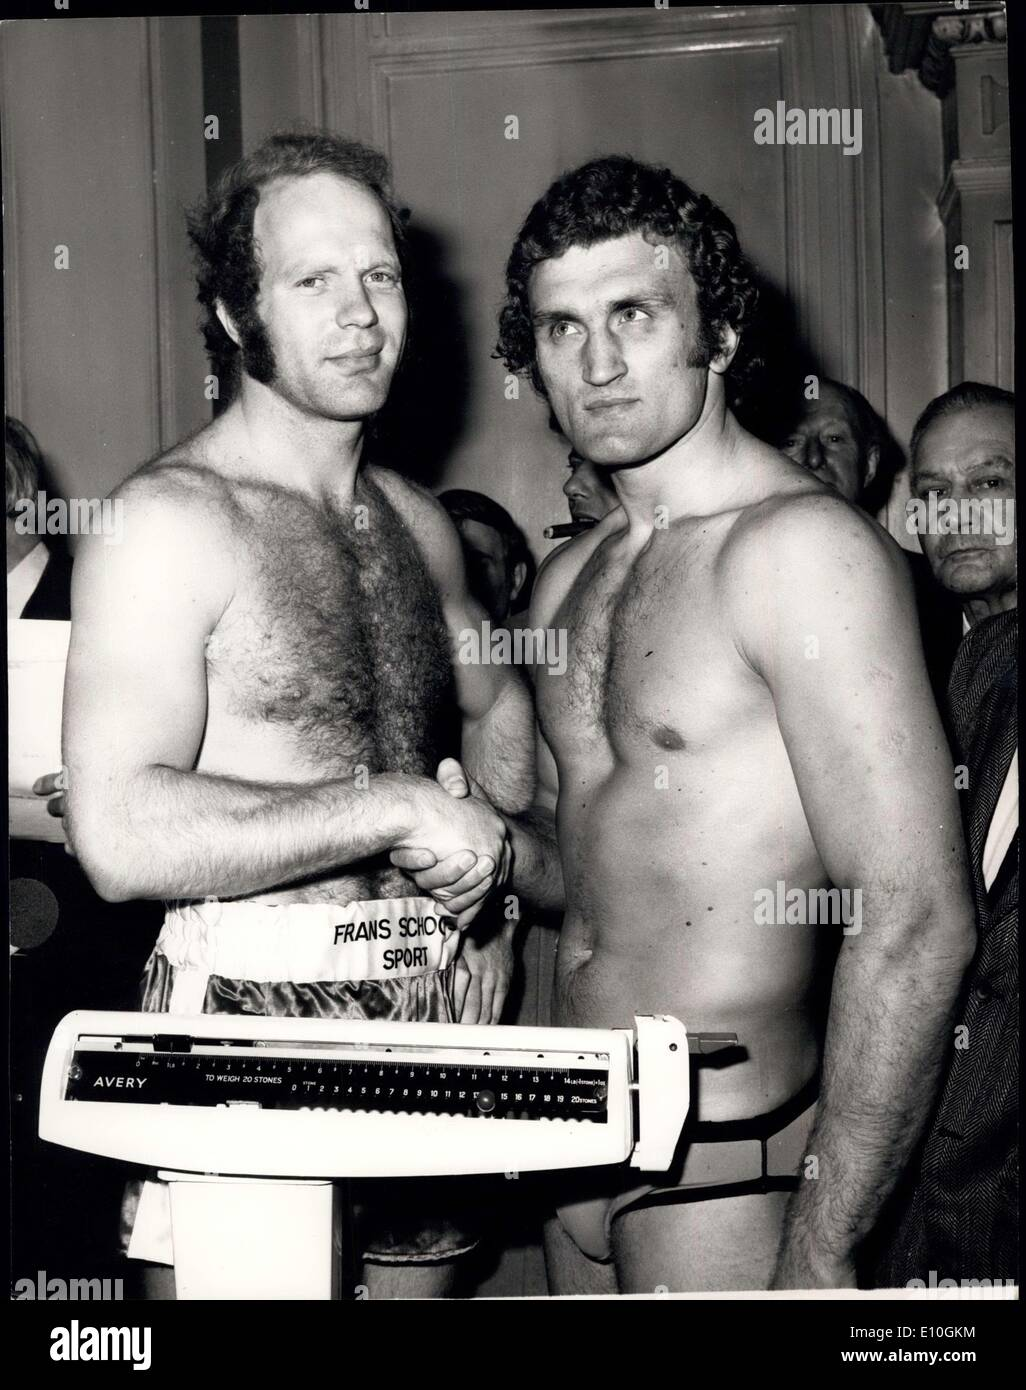 Jan. 16, 1973 - Bugner and Lubbers weigh in for tonight's fight; Photo Shows Lubbers of Holland Britain European title holder, pictured at the Hotel, Tottenham Court Road, when they weighed in for tonight's fight at the Royal Albert Hall when Bugner defends his title. - Stock Image